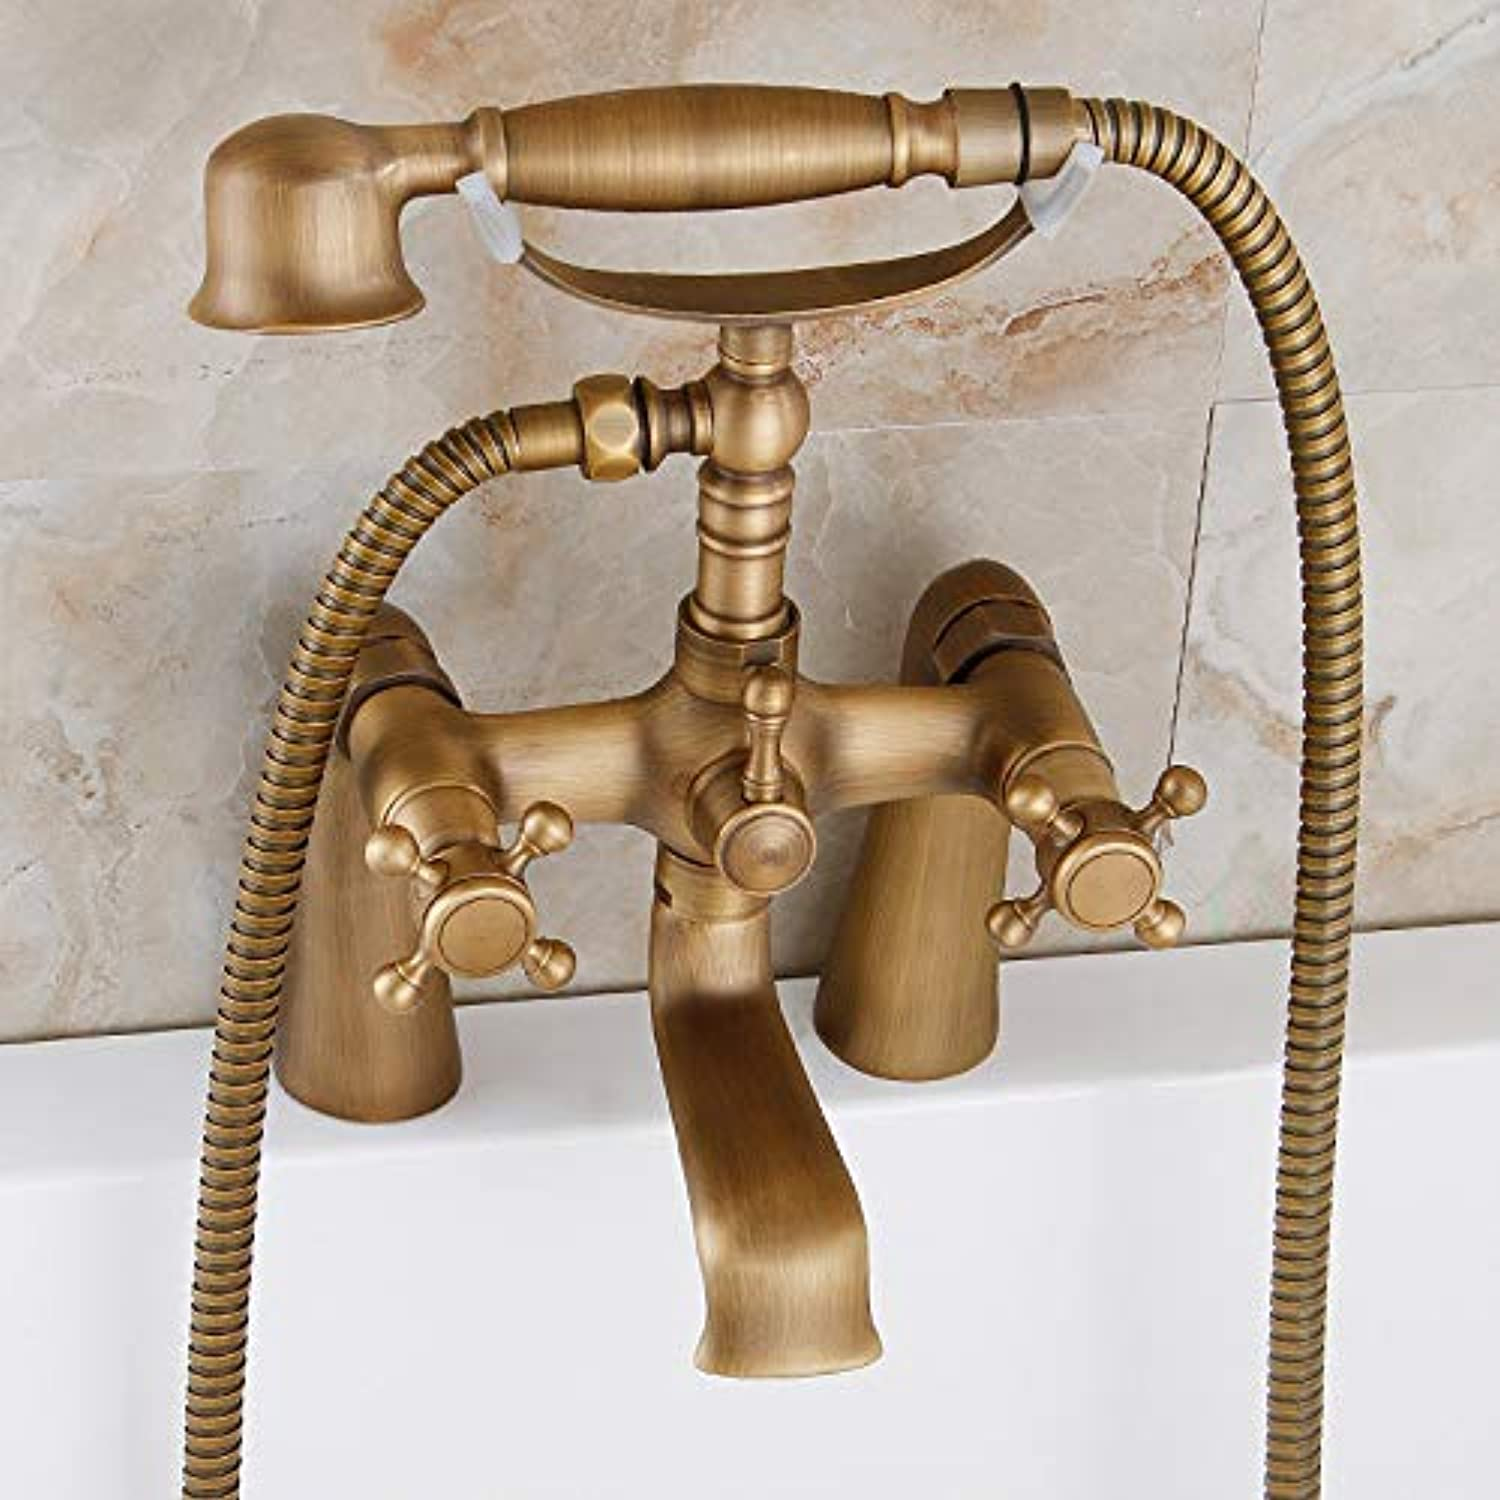 redOOY Taps All-Copper European-Style Bathtub Mixer Faucet Antique Shower Shower Retro Hot And Cold Shower